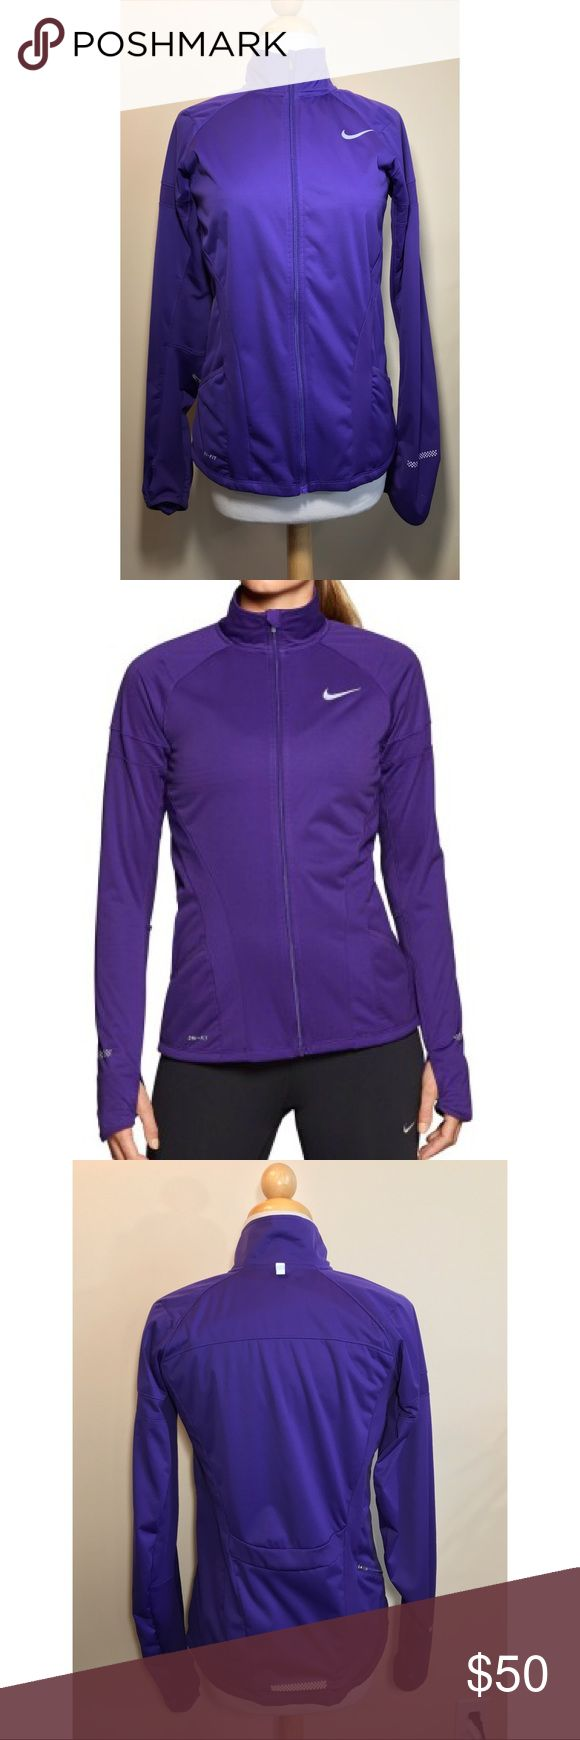 Nike Element Shield Full Zip Womens Running Jacket Gently used Nike Women's Running Jacket in purple. Bike Description -  Sphere Dry fabric to wick sweat away, reducing cling and helping you stay dry and comfortable Laminate finish to help protect against wind Dri-FIT fabric to wick away sweat and help keep you dry and comfortable Thumbholes for enhanced warmth Back zip pocket for secure storage Nike Jackets & Coats